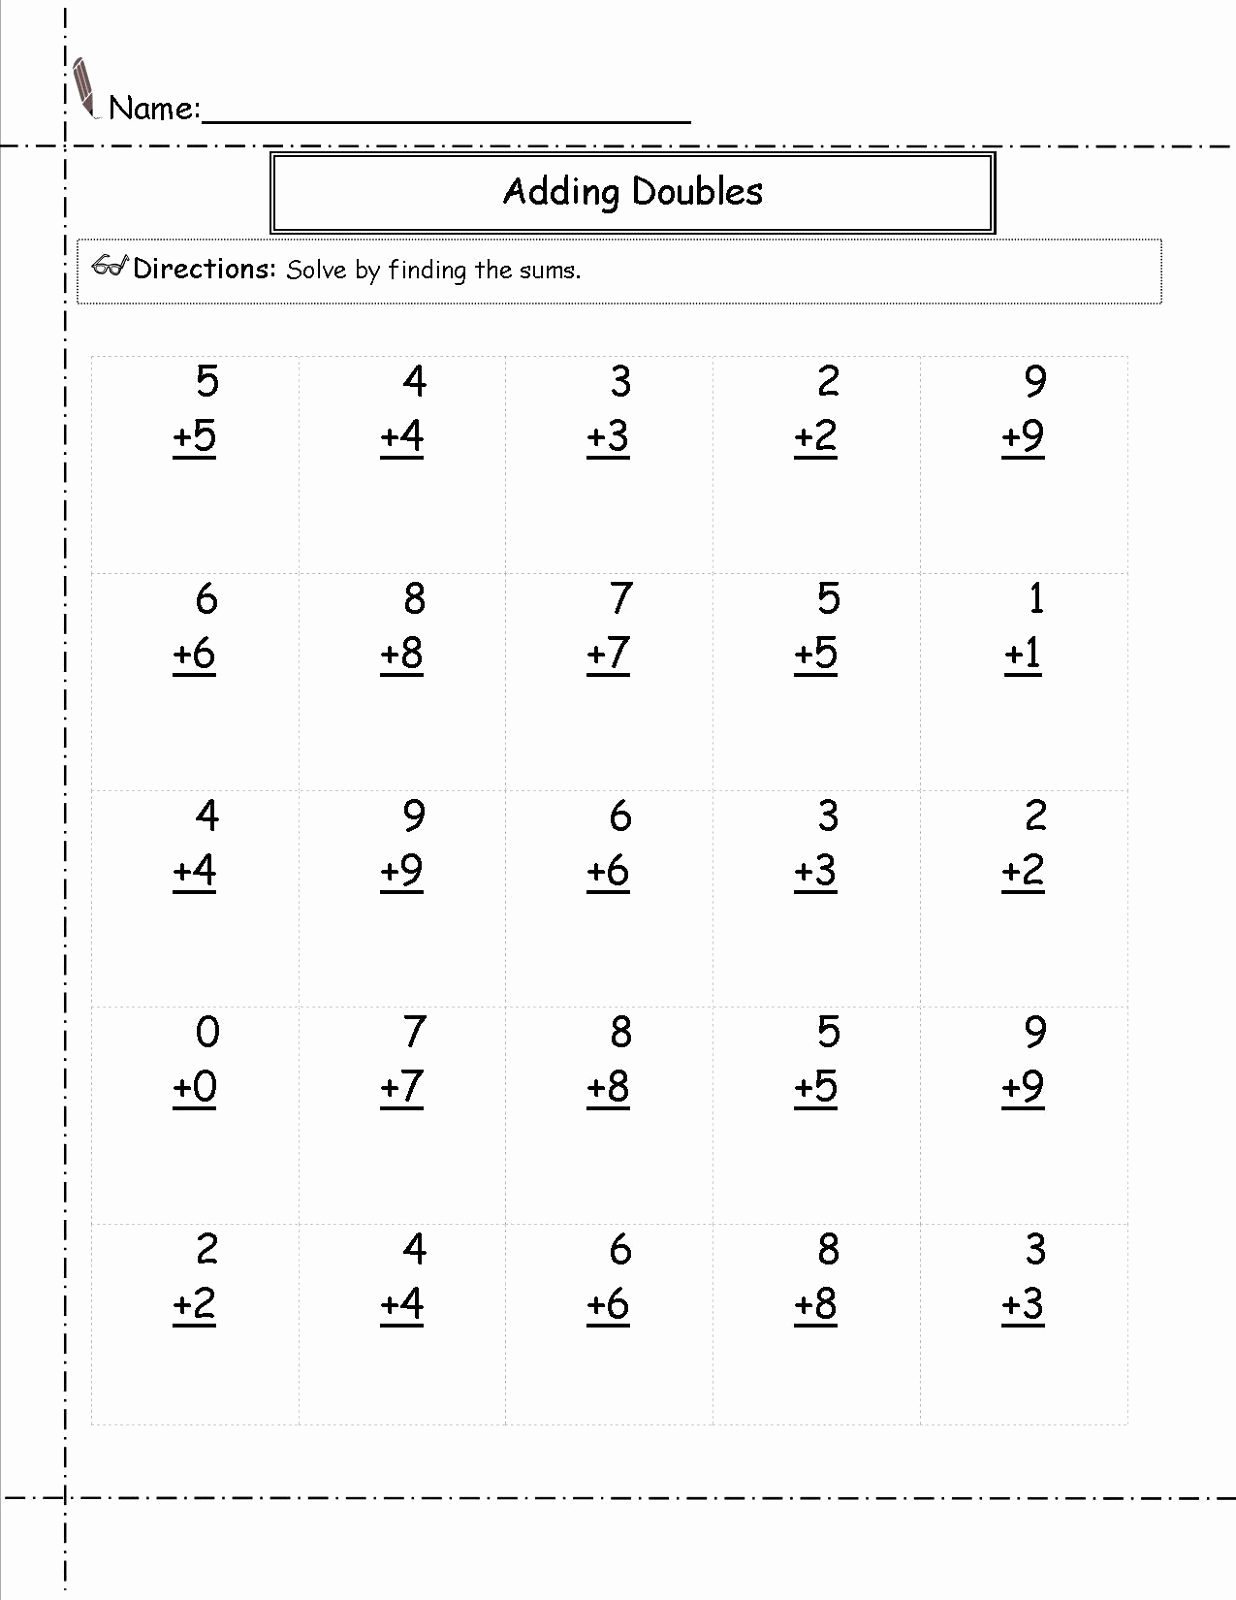 Doubles Addition Worksheet Elegant Professionally 20 Doubles Addition Facts Worksheets